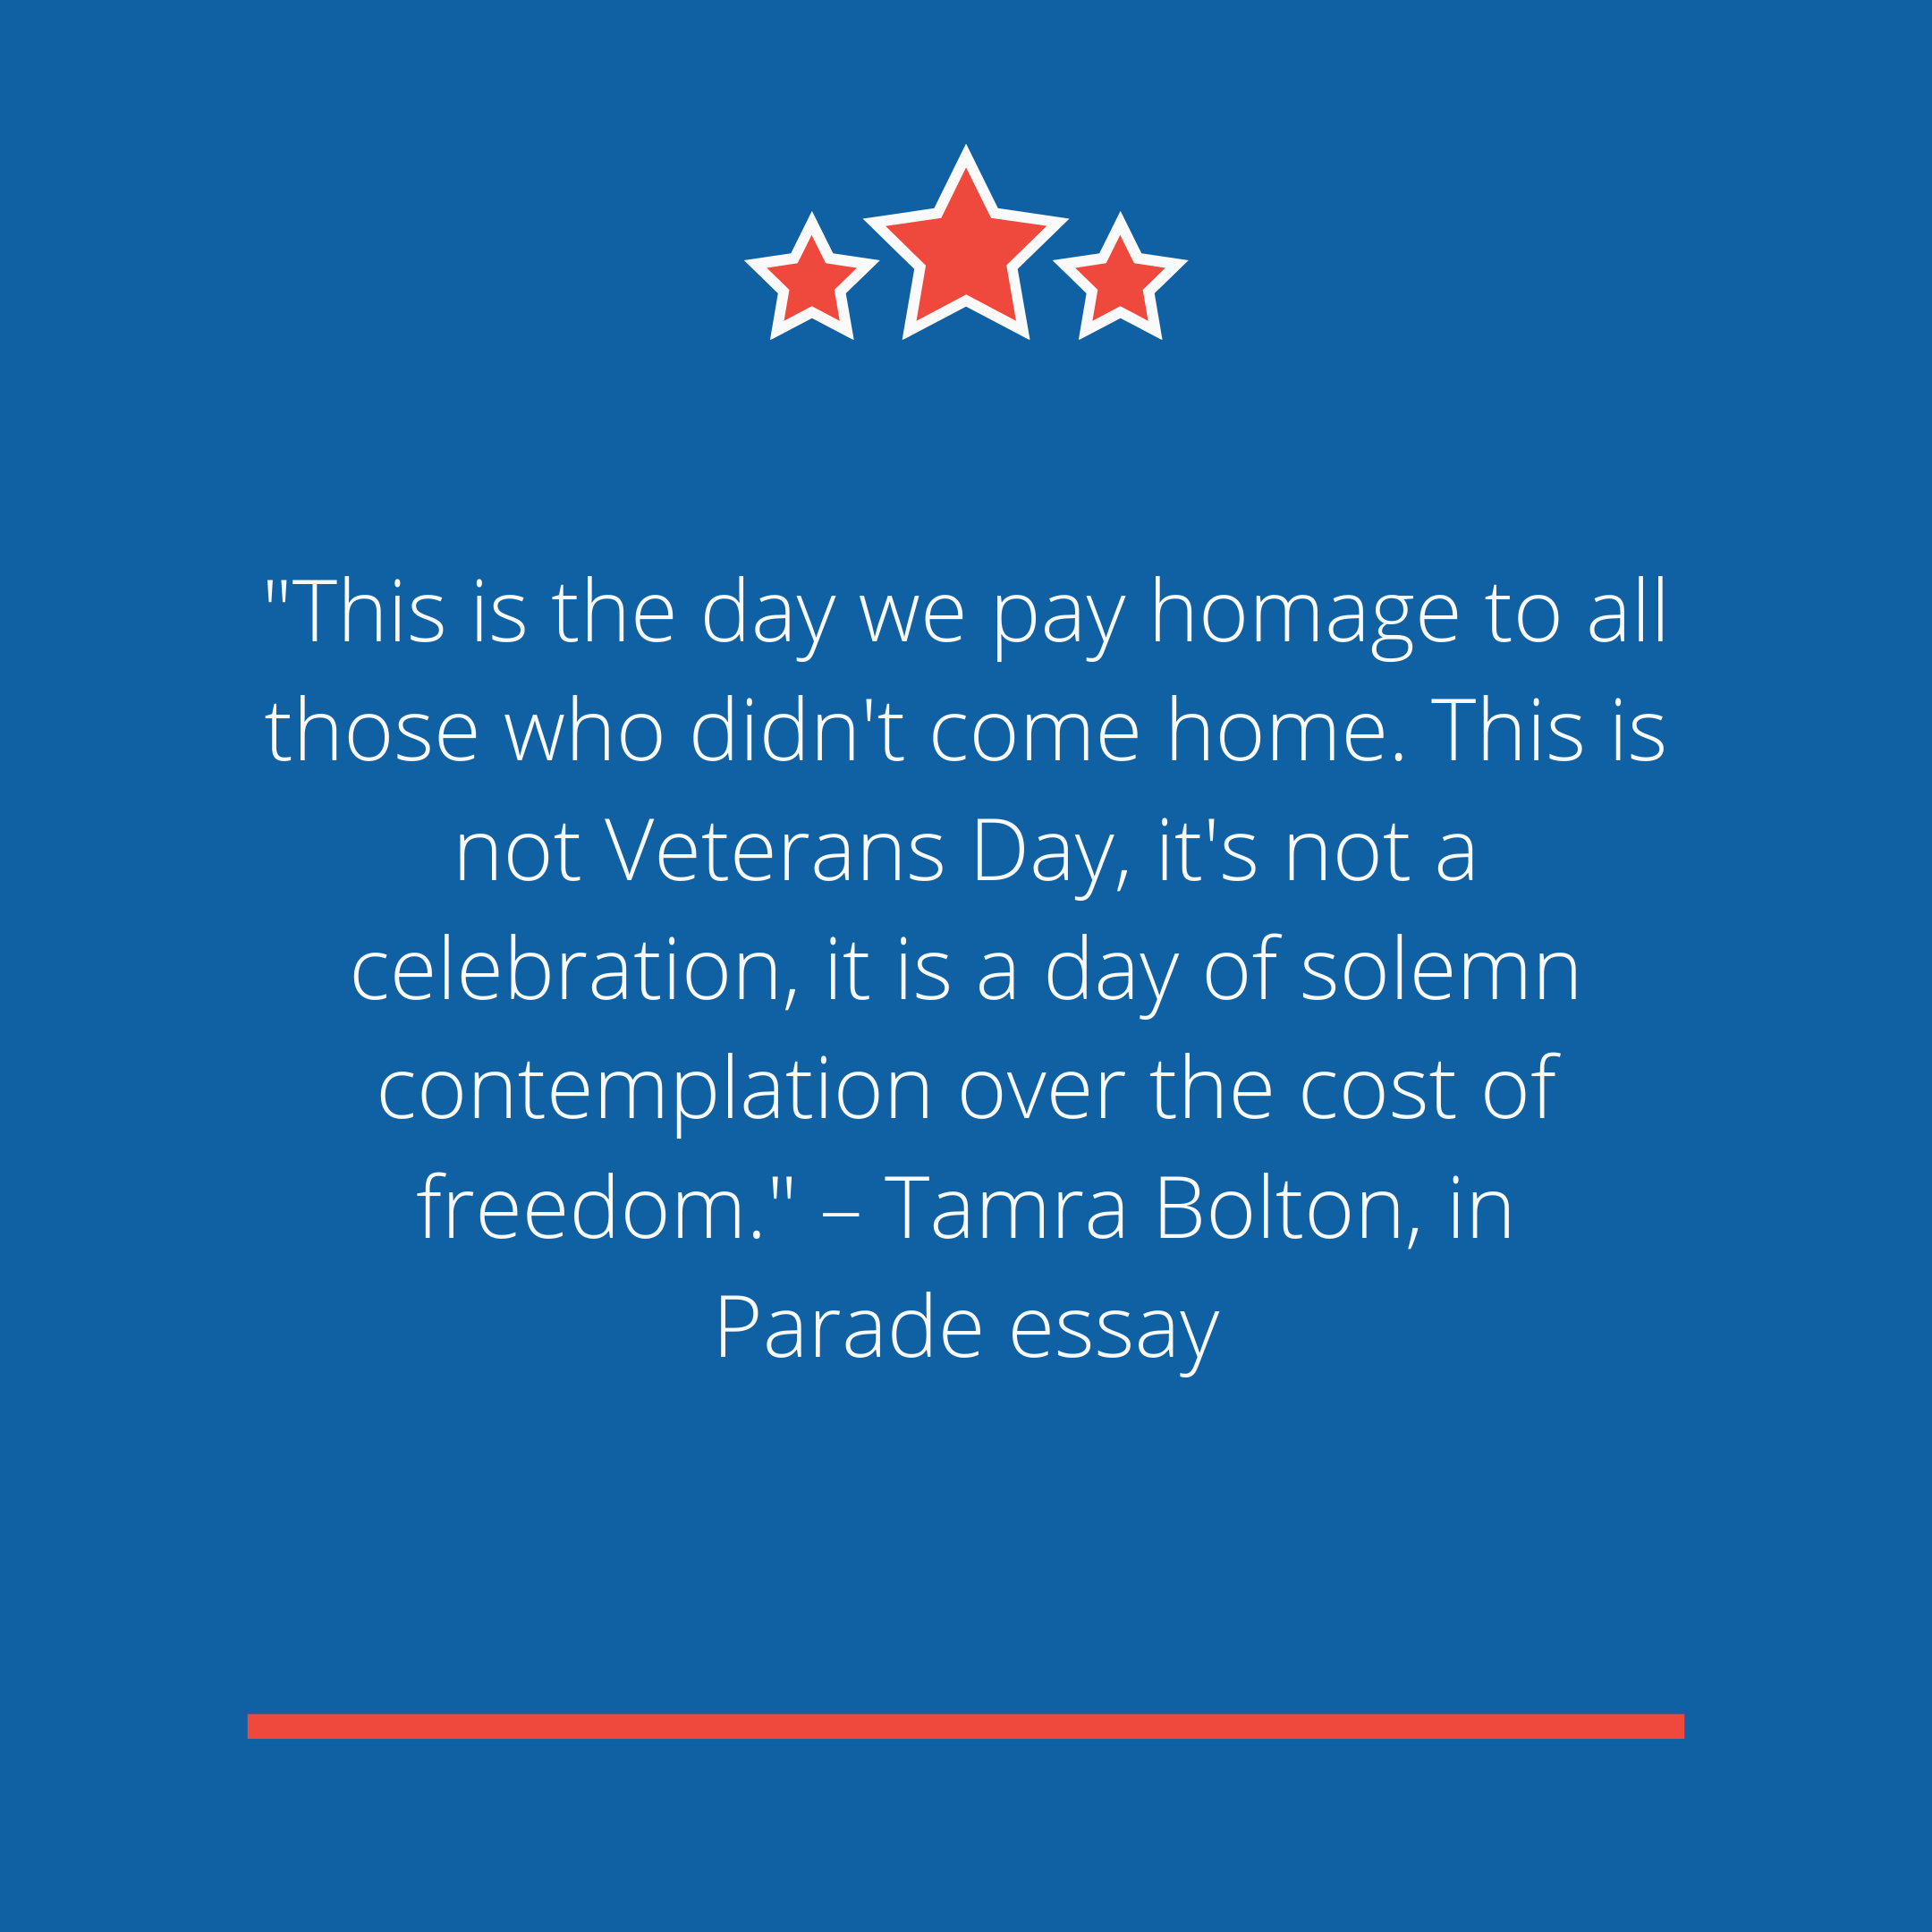 """This is the day we pay homage to all those who didn't come home. This is not Veterans Day, it's not a celebration, it is a day of solemn contemplation over the cost of freedom."" –Tamra Bolton, in Parade essay"